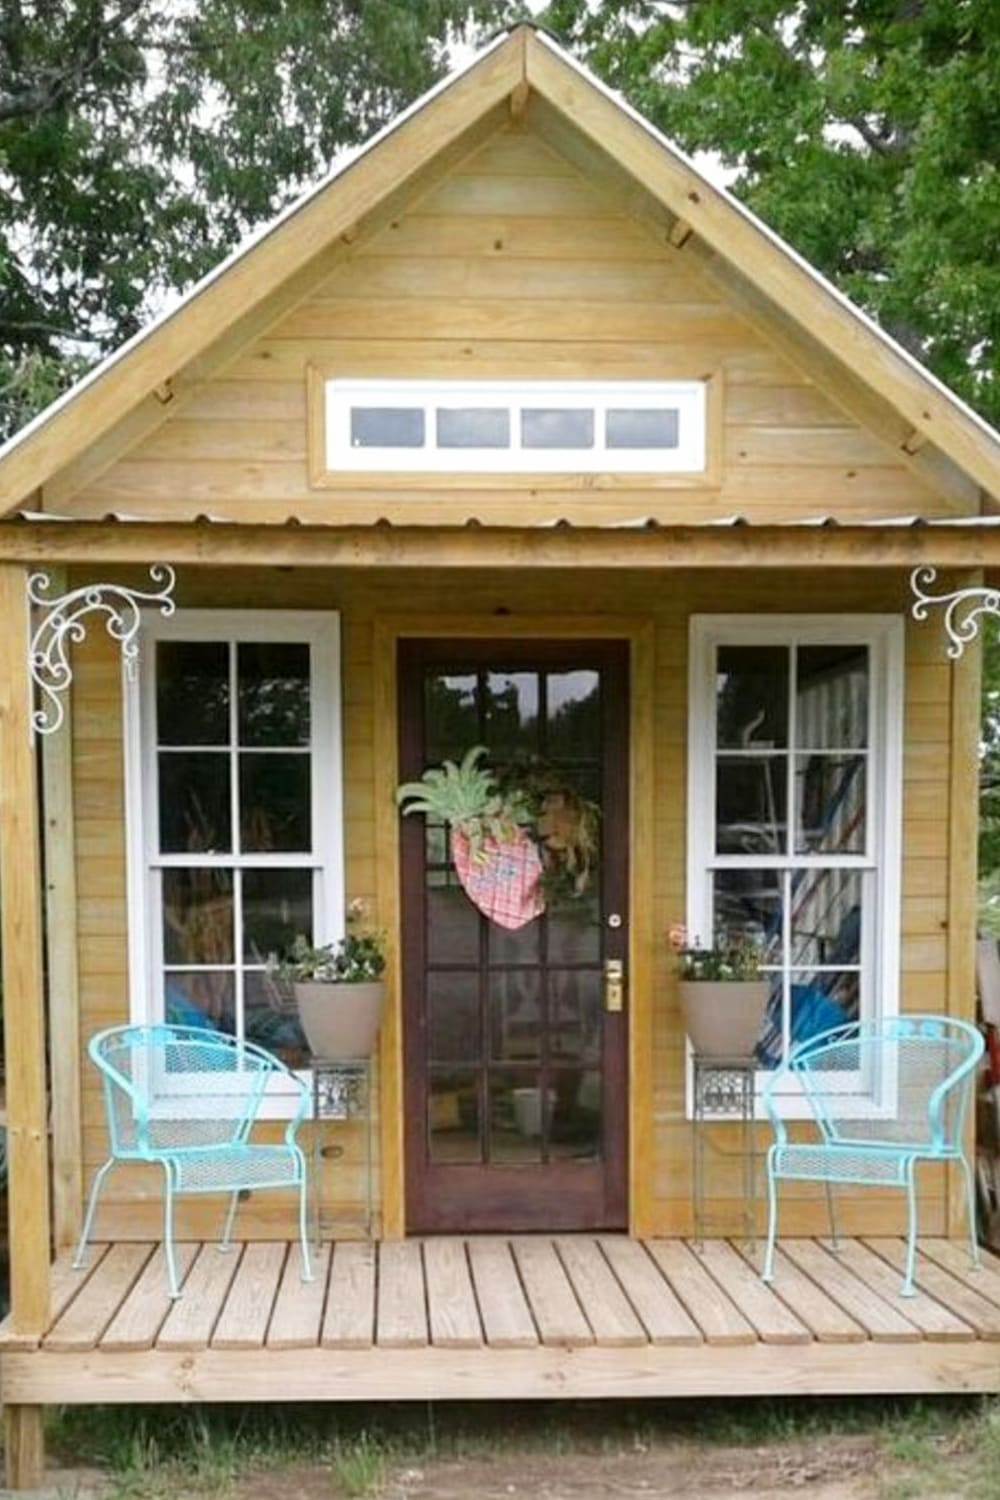 She Shed Ideas Gorgeous Shed Office Craft Room Woman Cave Ideas For Your Backyard Shed Decor Shed With Porch Shed Design